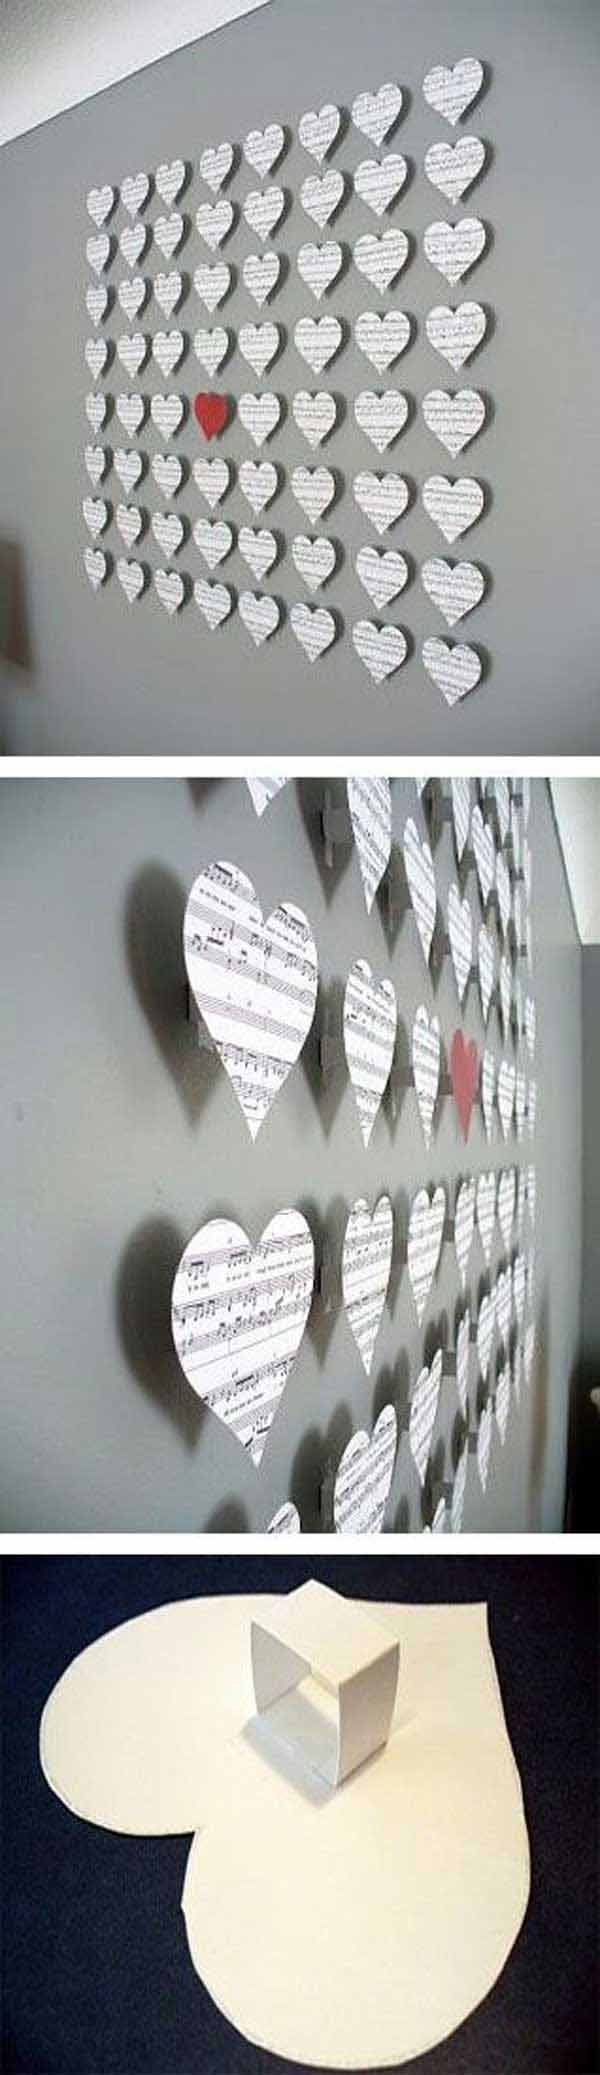 26 Diy Cool And No Money Decorating Ideas For Your Wall Amazing Diy Interior Home Design